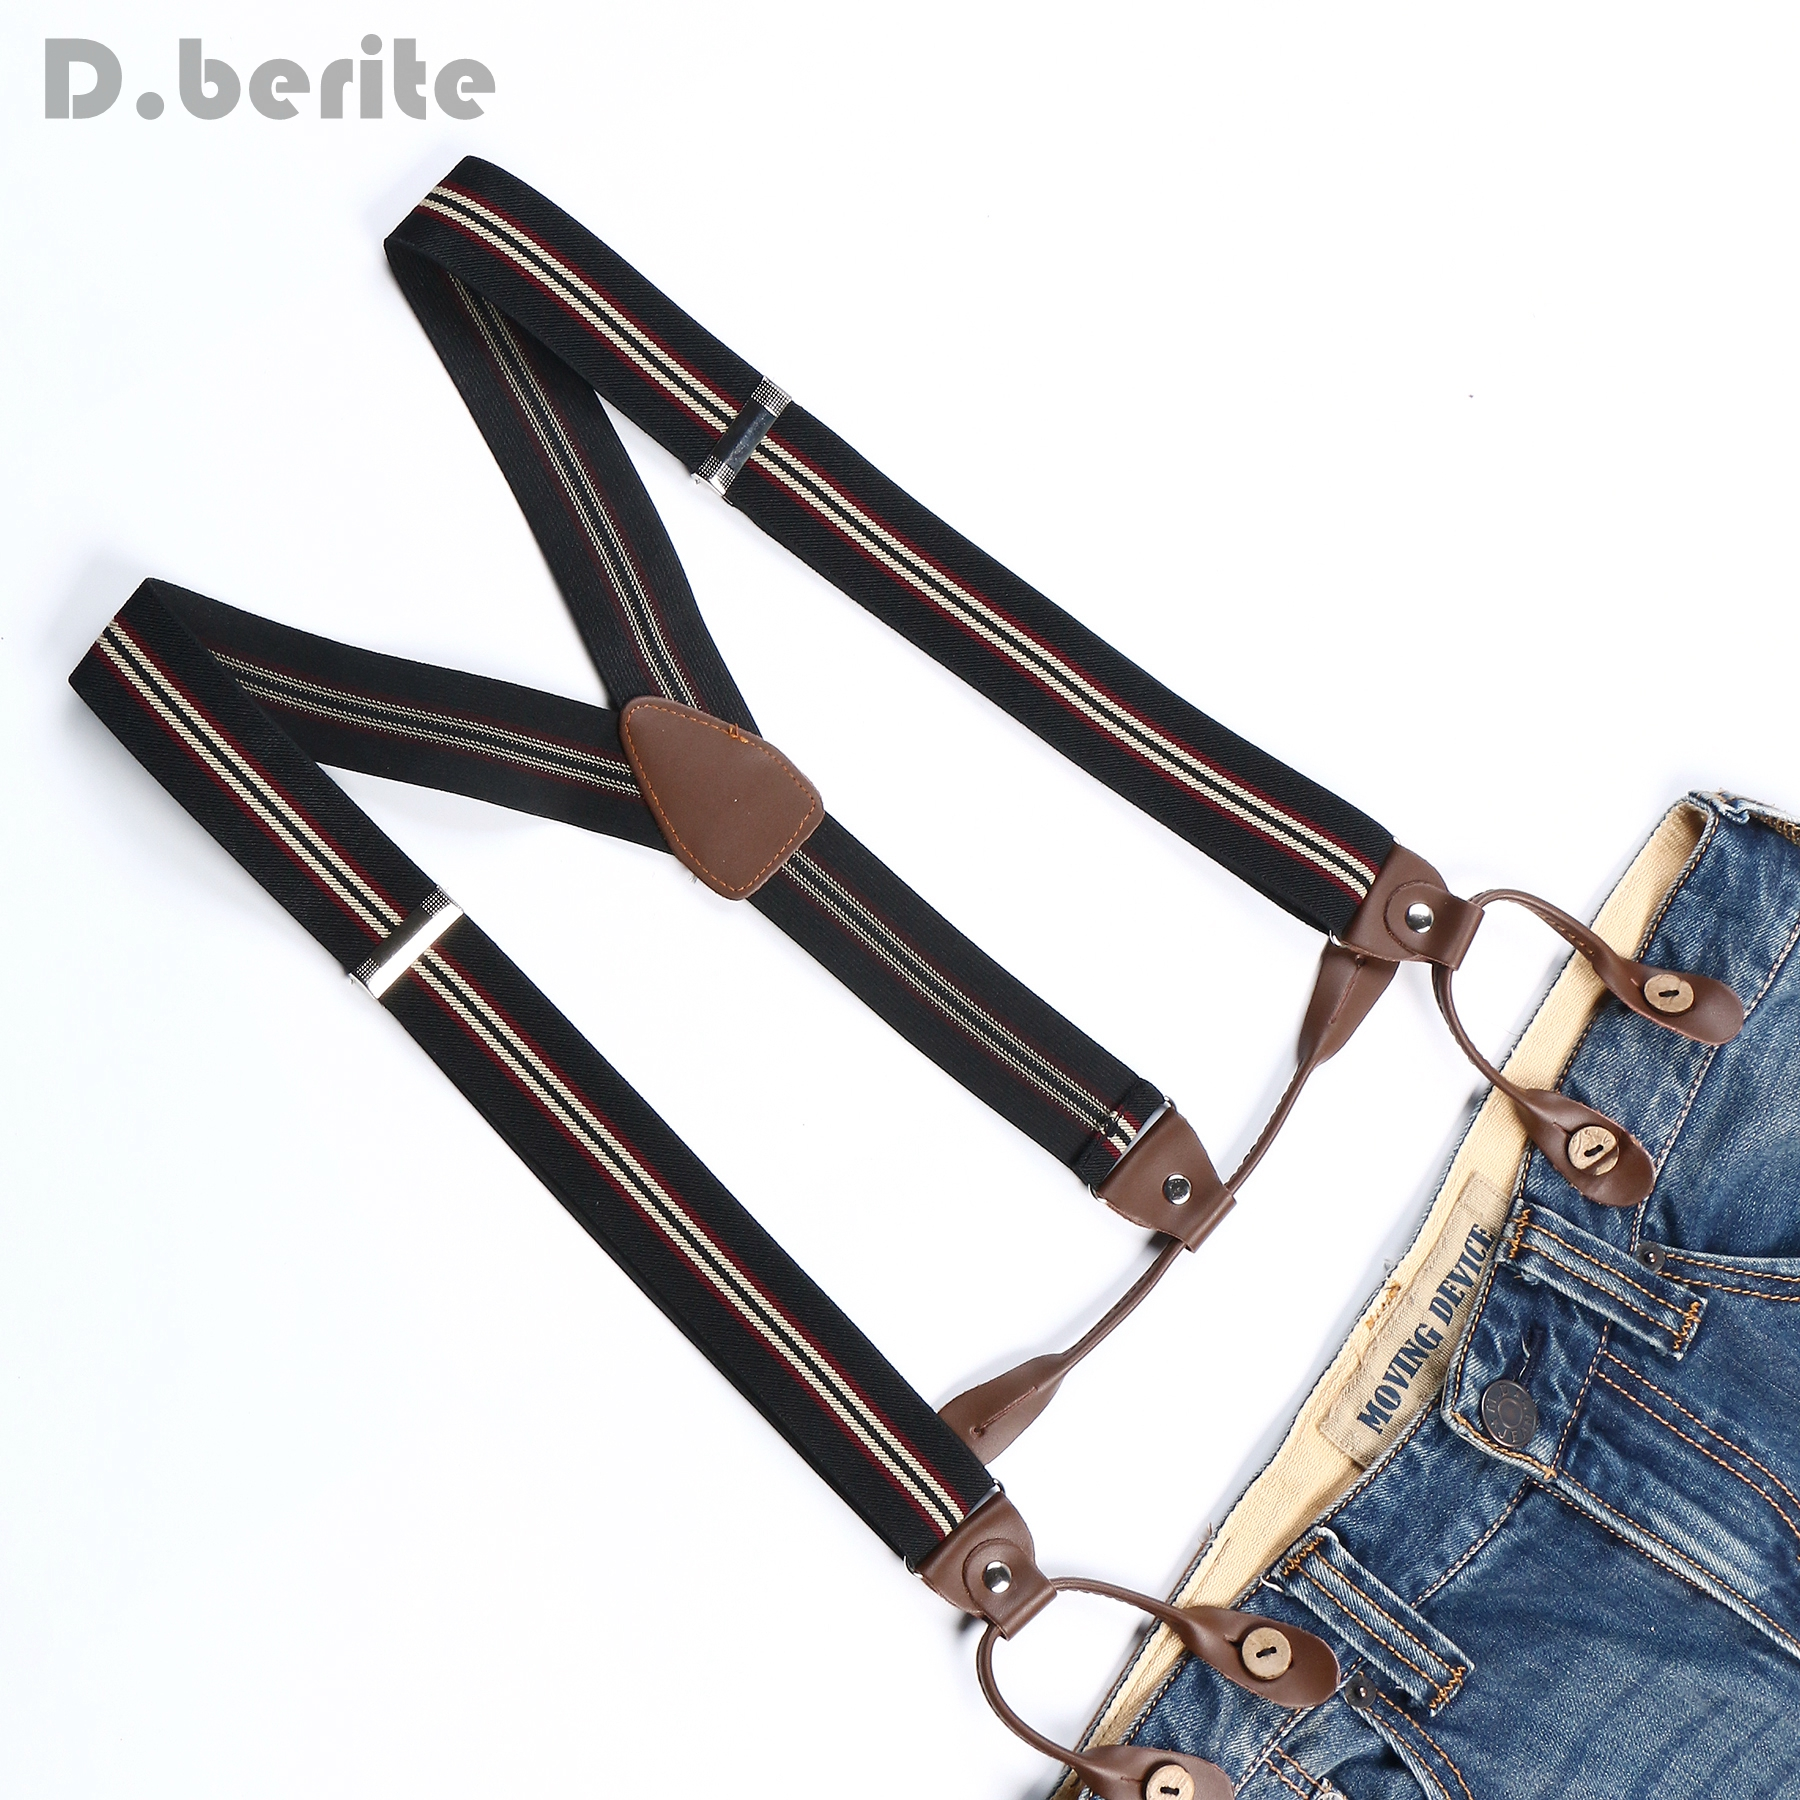 Braces Unisex Suspender Adjustable PU Leather Adult Belt Black Beige Red Striped BD719